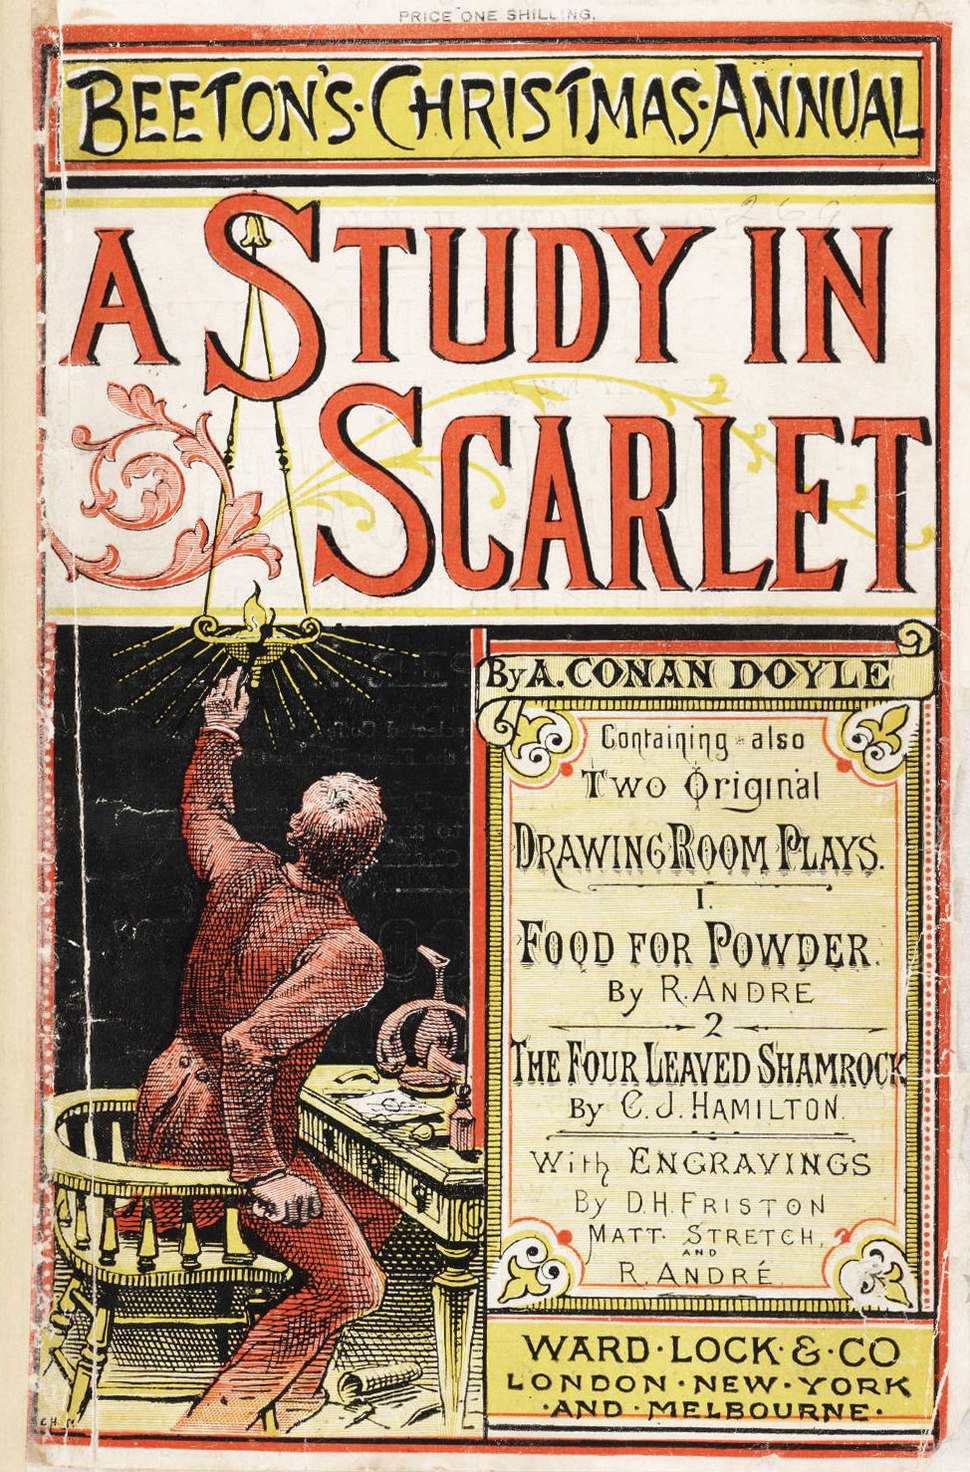 A Study in Scarlet from Beeton's Christmas Annual 1887